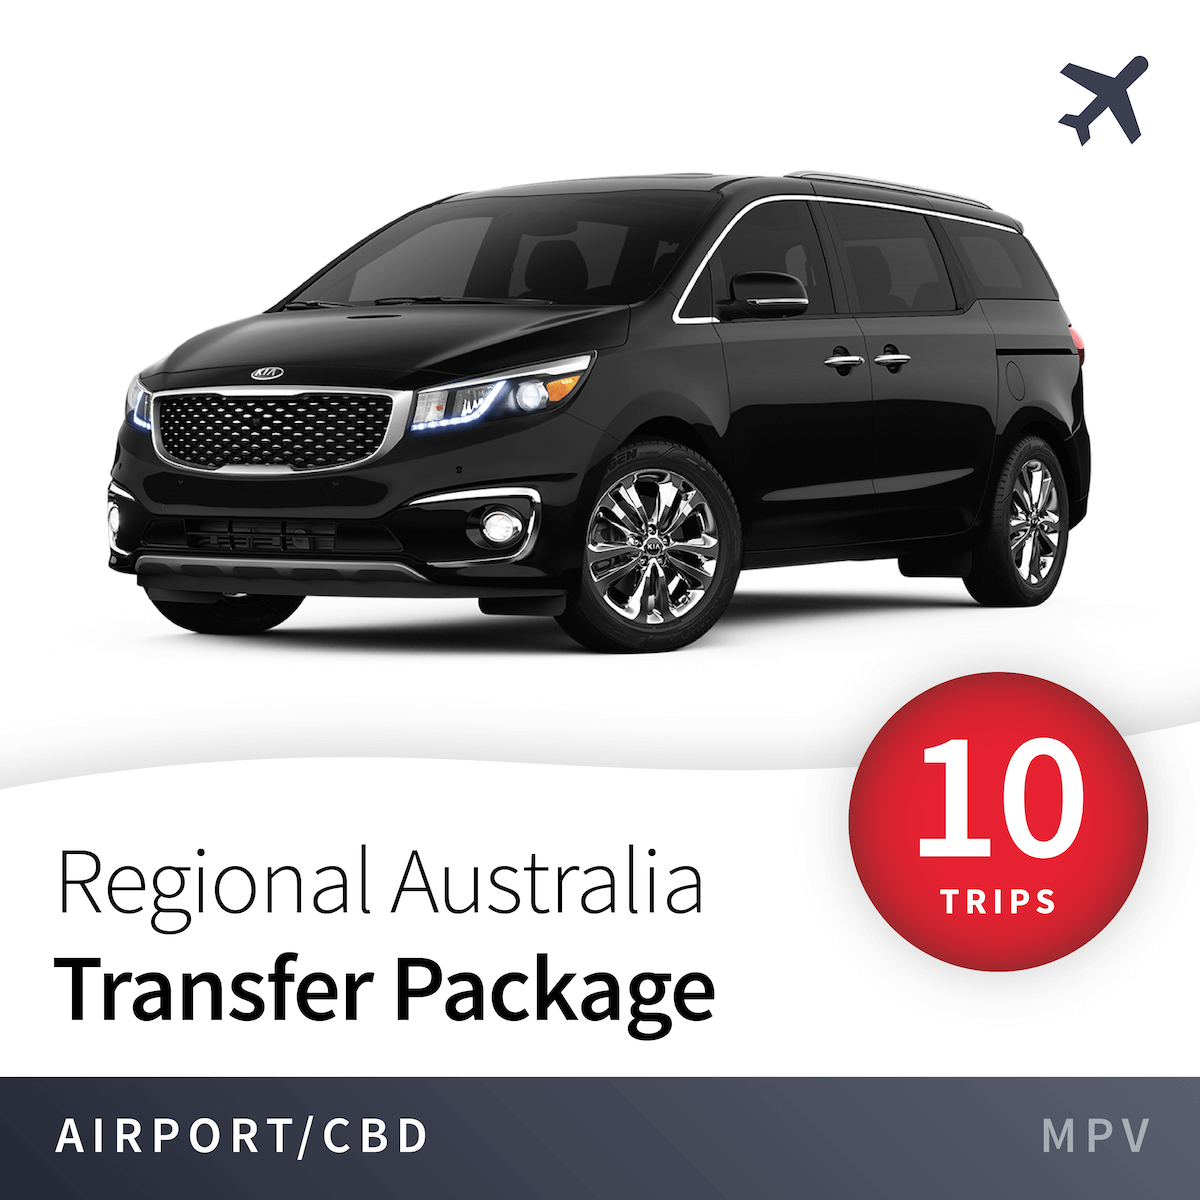 Regional Airport Transfer Package - MPV (10 Trips) 1